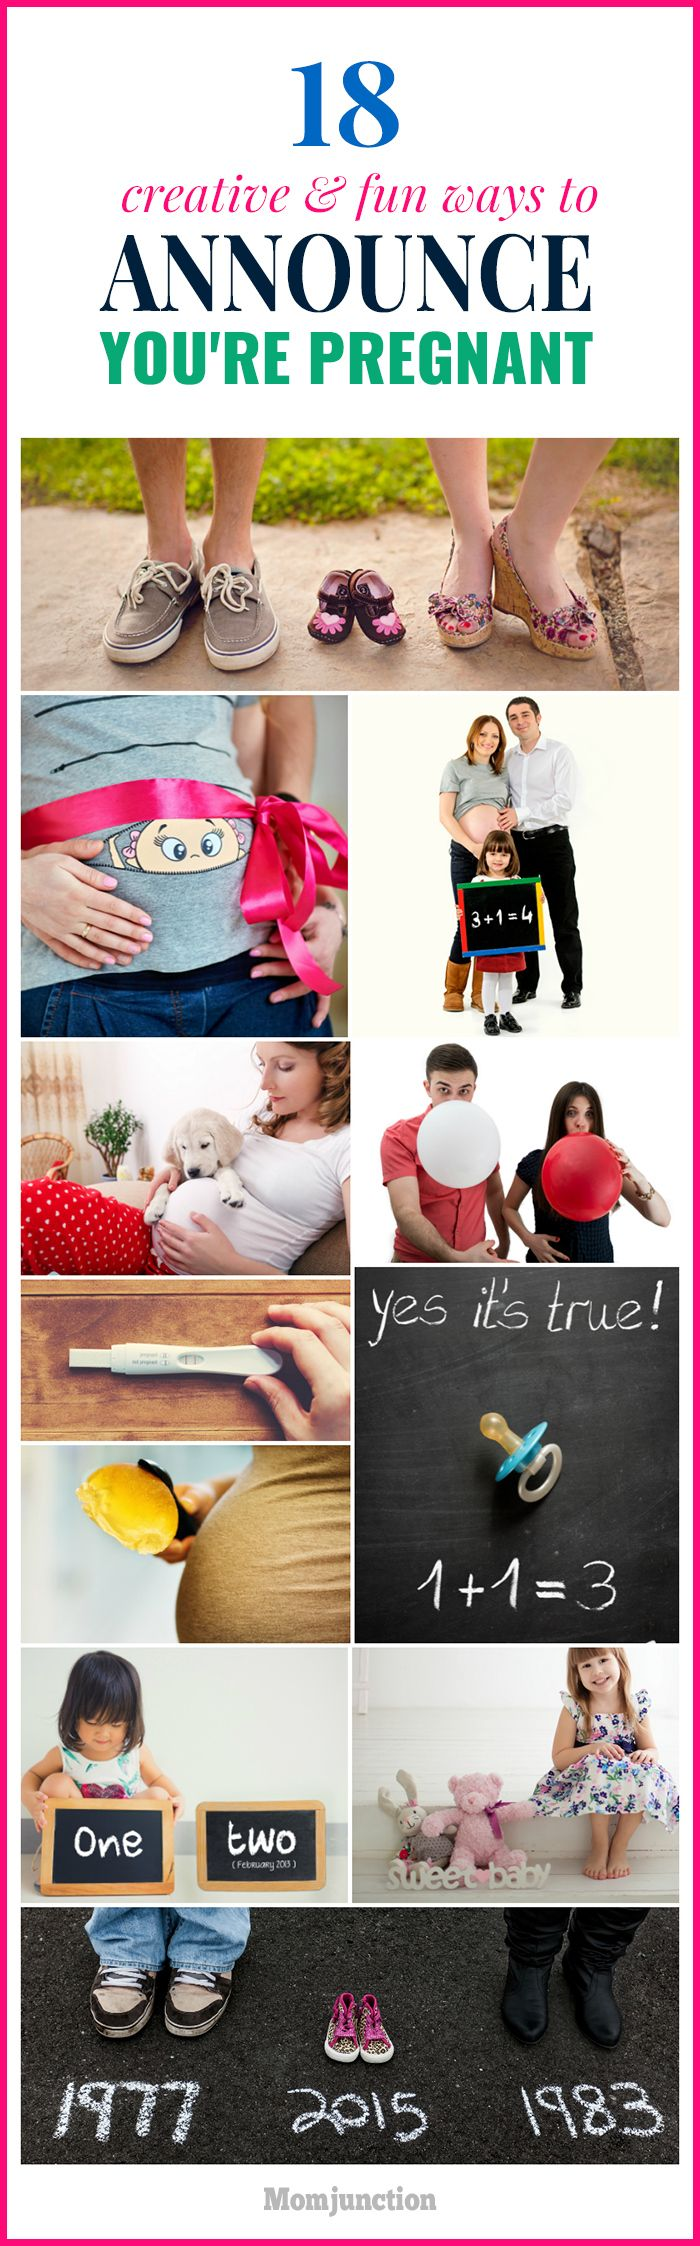 18 Most Creative & Fun Ways To Announce You're Pregnant